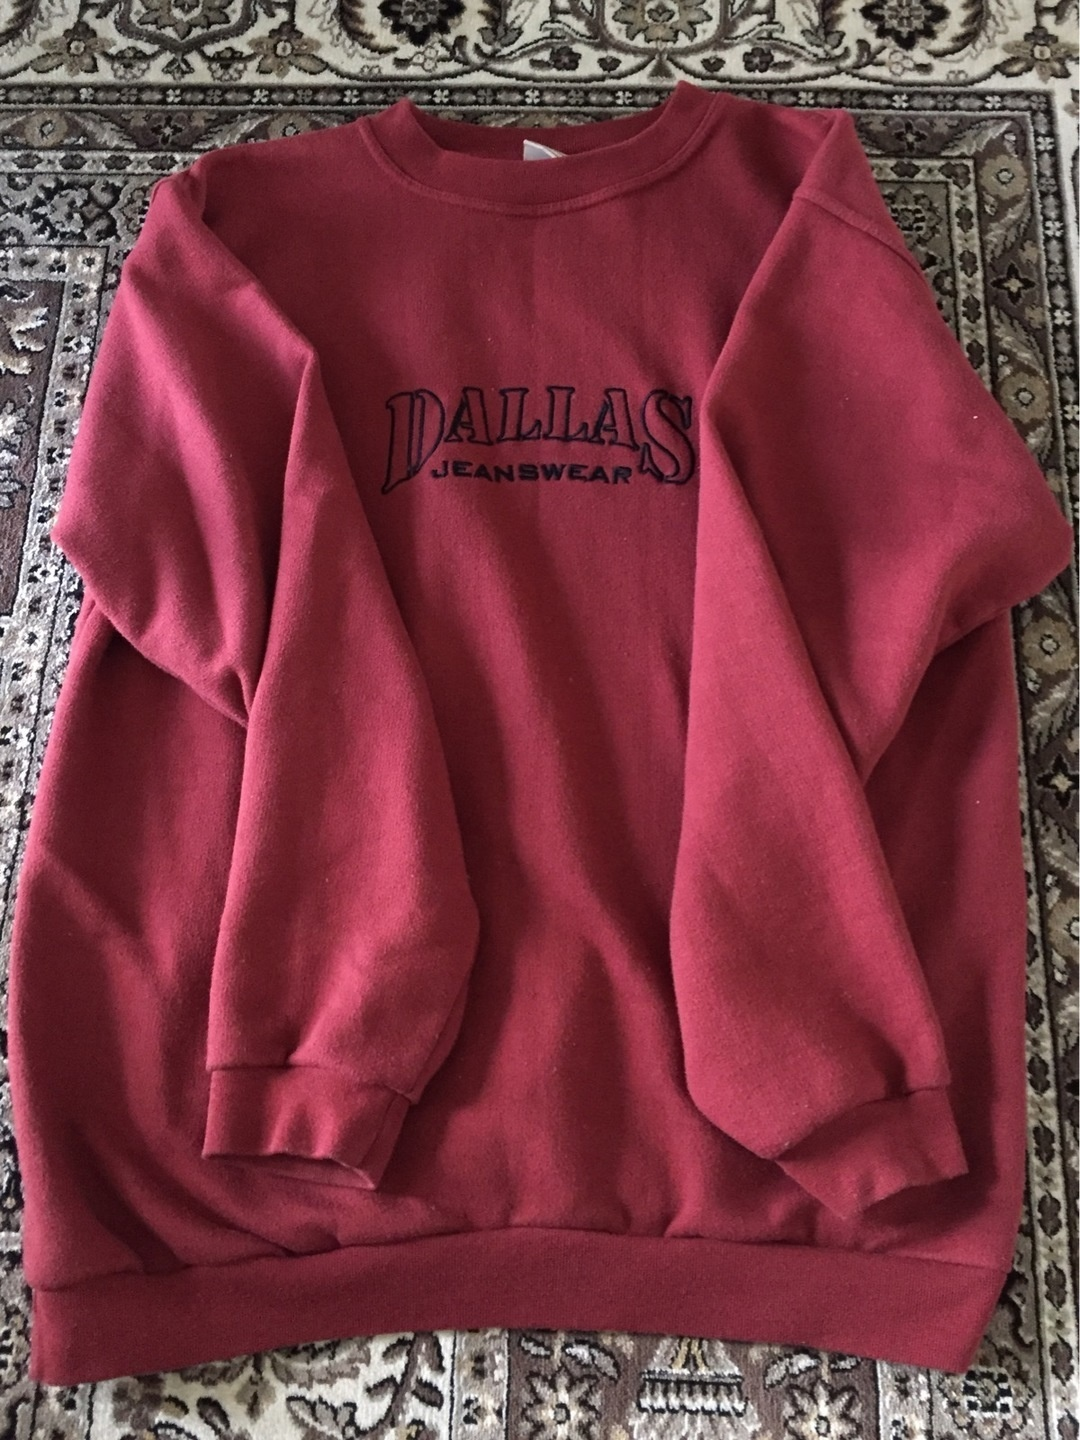 Damen kapuzenpullover & sweatshirts - DALLAS photo 1